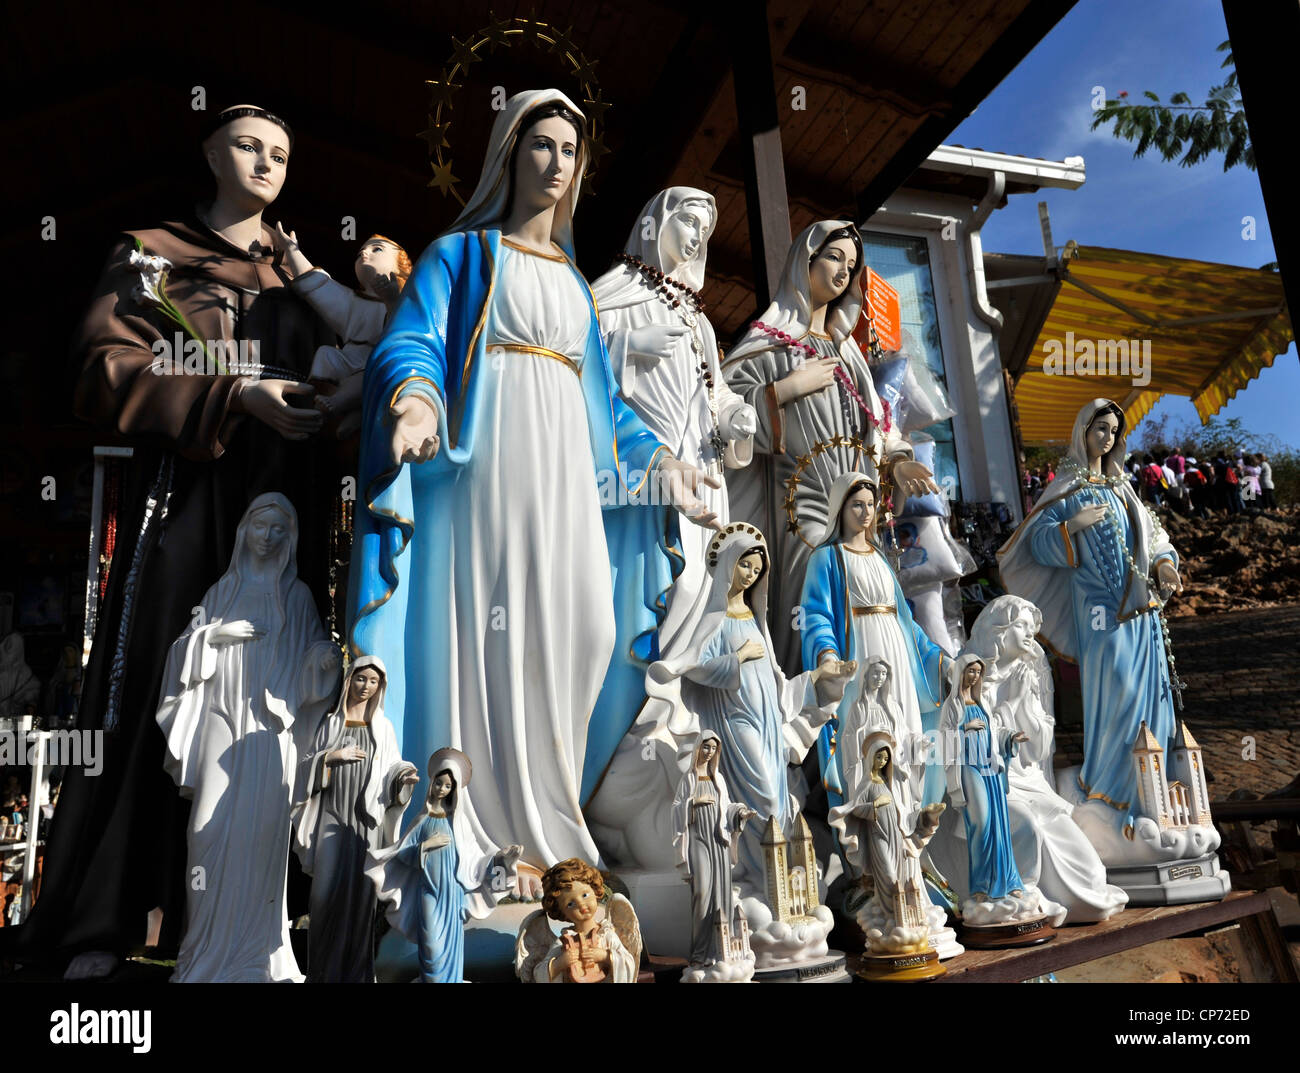 Europe Medjugorje Bosnia Herzegovina religious items at the beginning of Apparition Hill - Stock Image